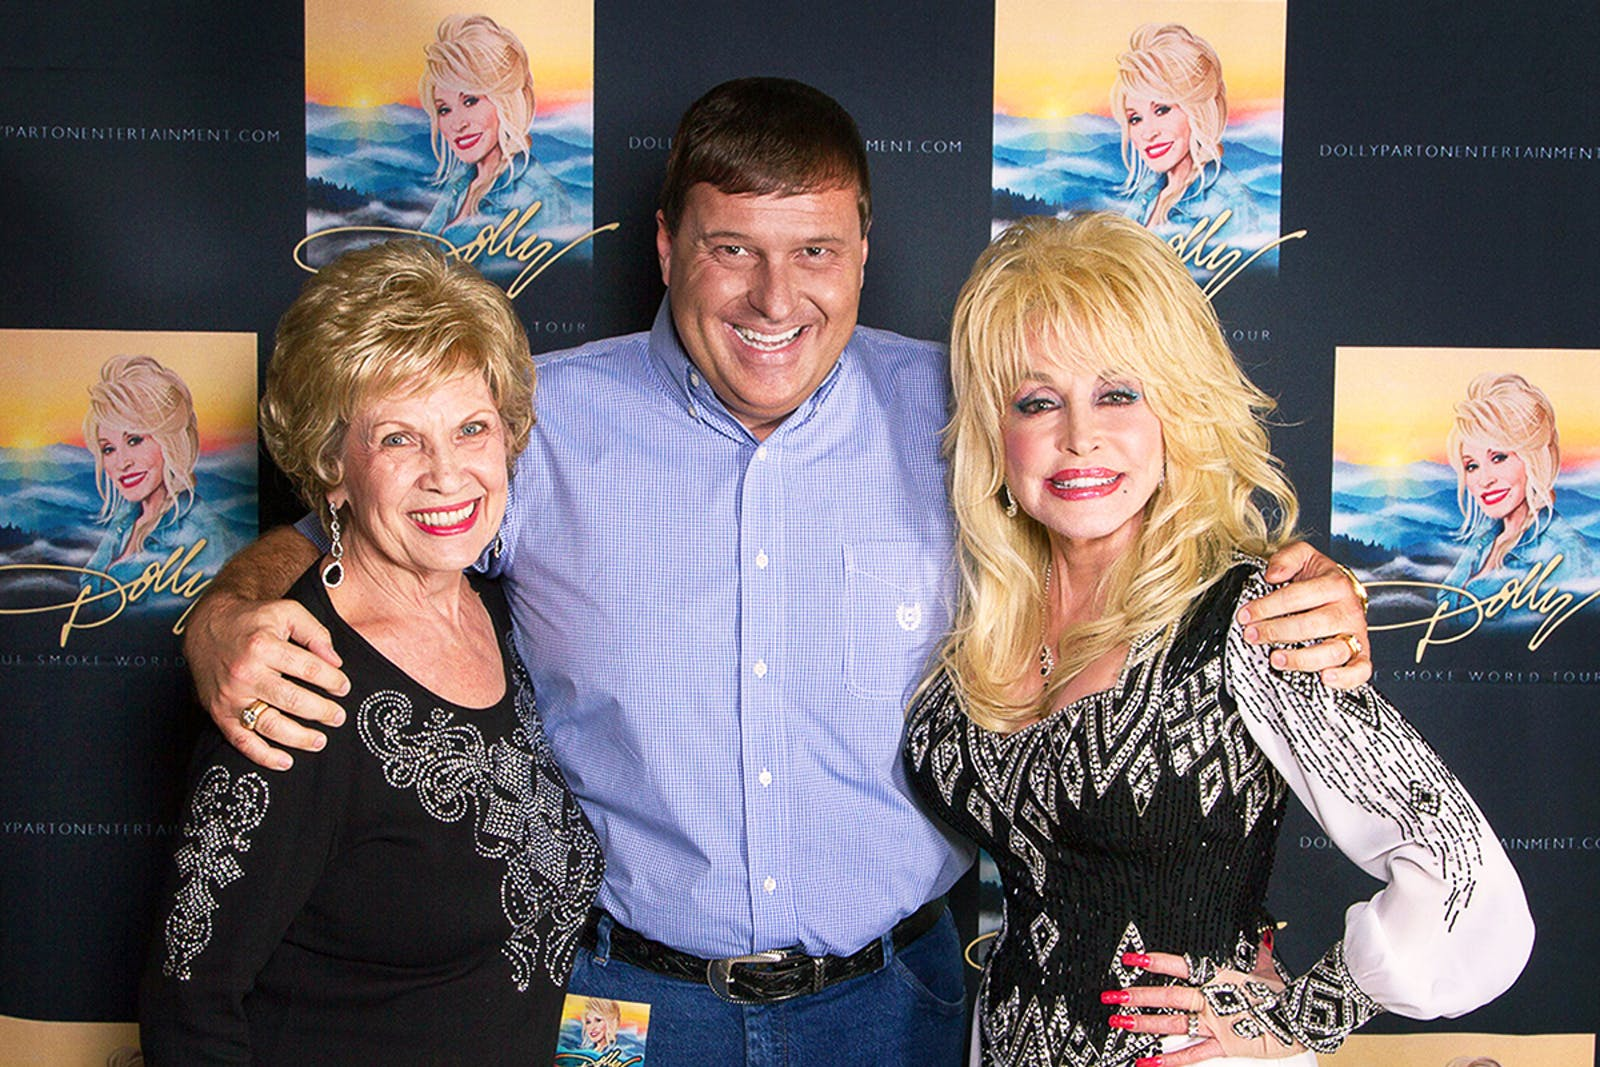 tracy-pitcox-dolly-parton-norma-jean1